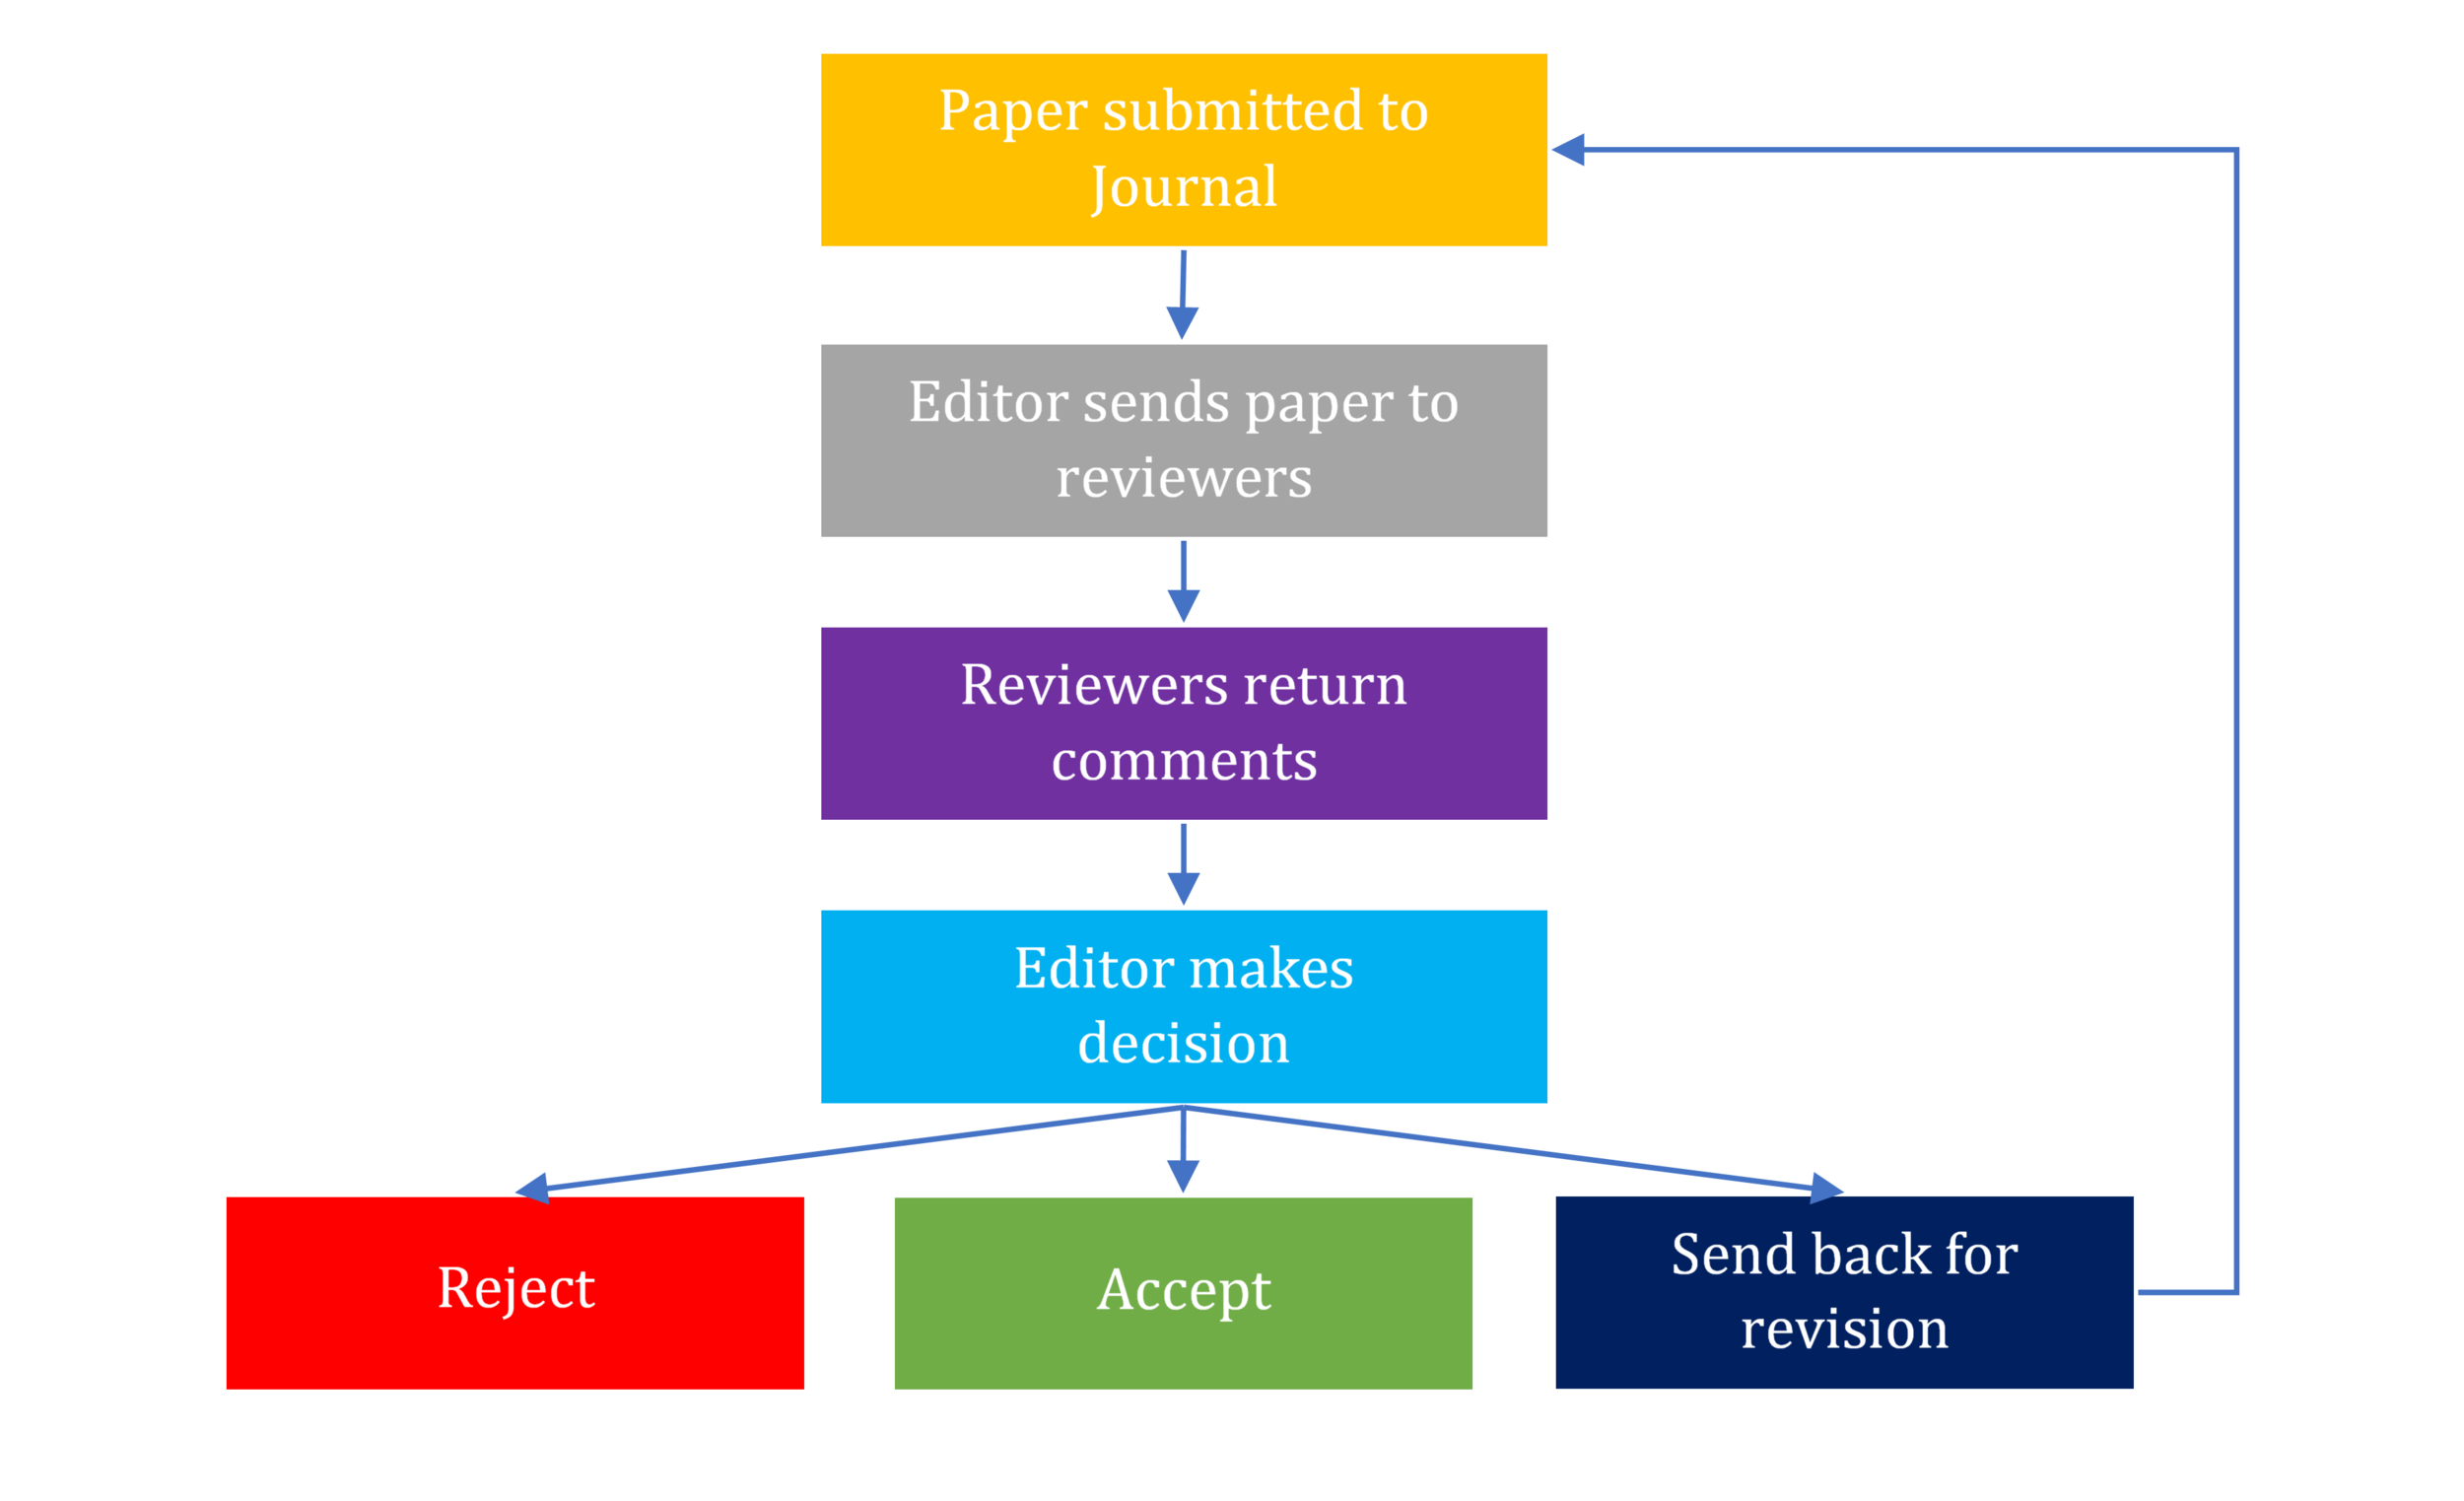 THE PEER REVIEW SYSTEM